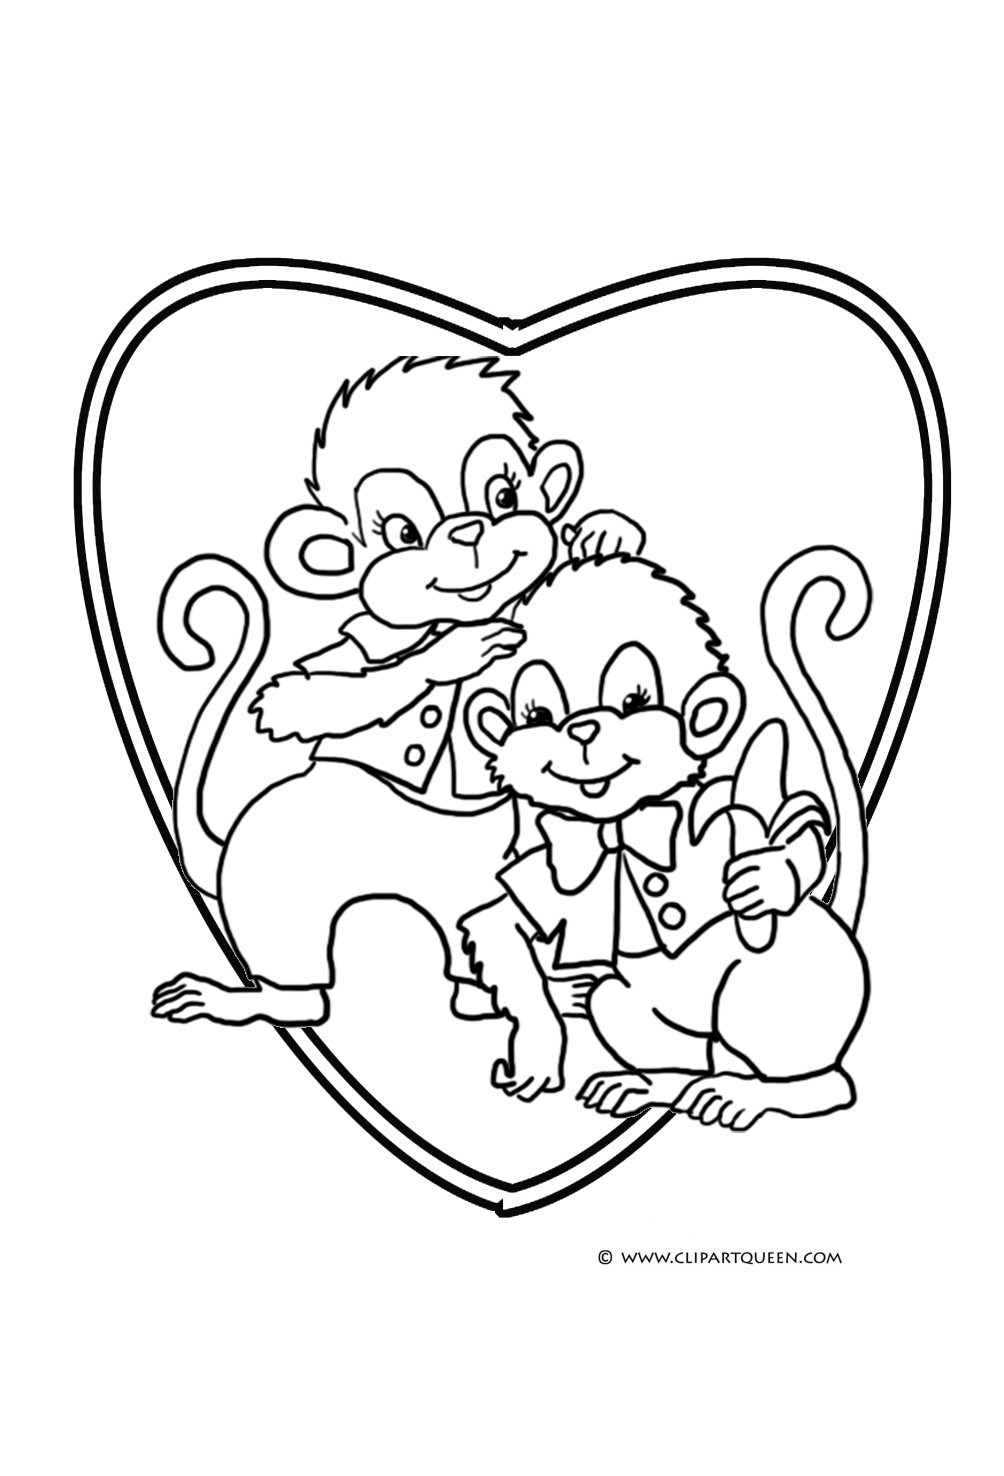 Big Heart Coloring Pages